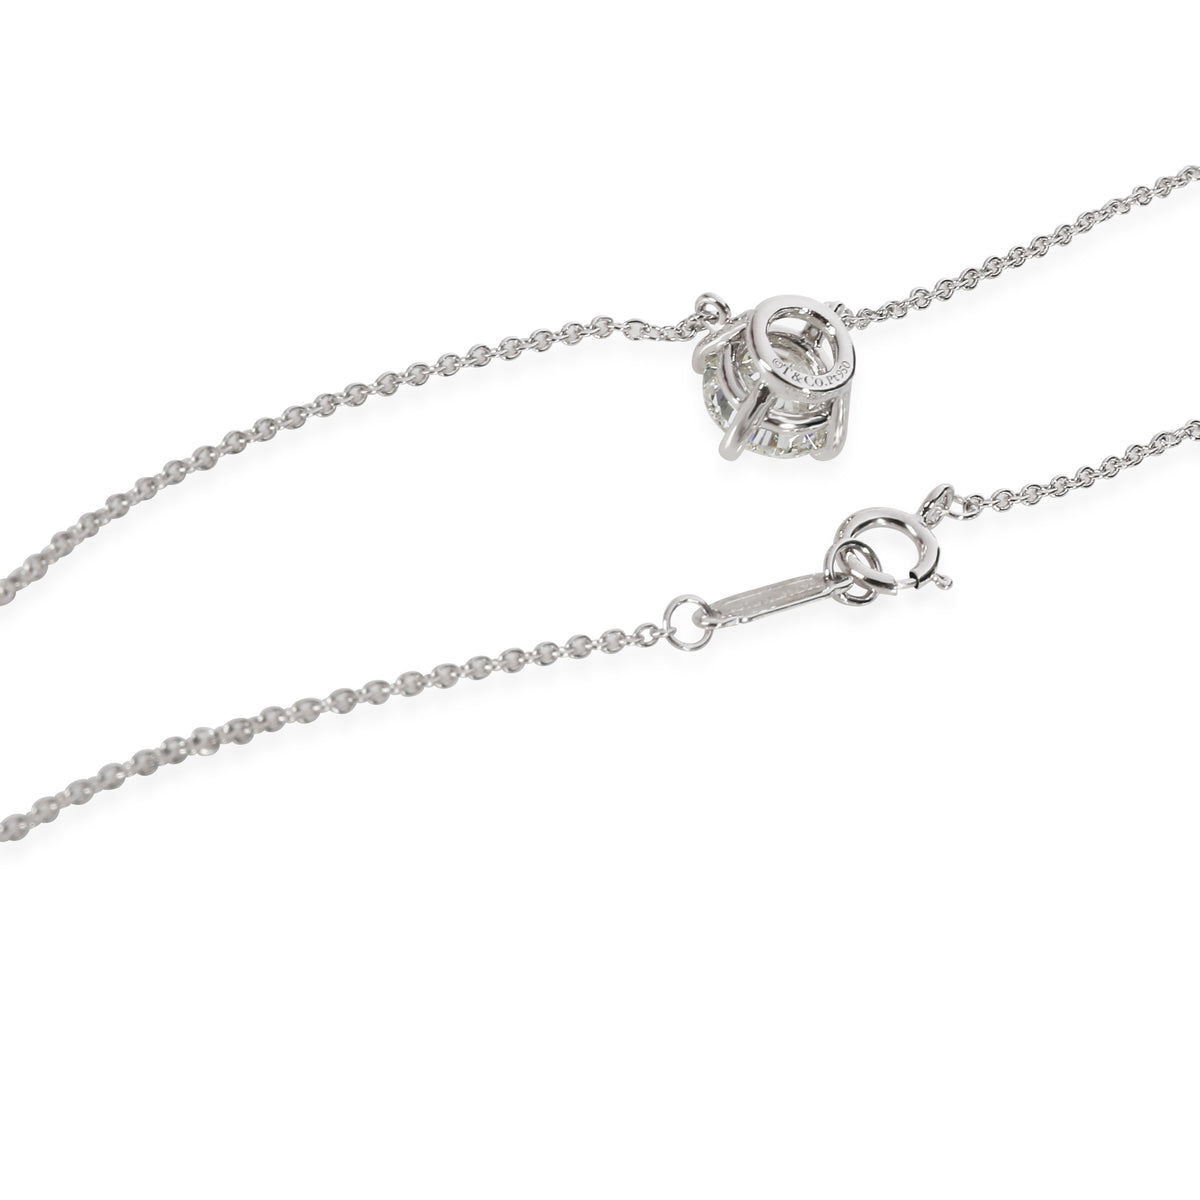 Tiffany & Co. Diamond Solitaire Necklace in   1 CTW